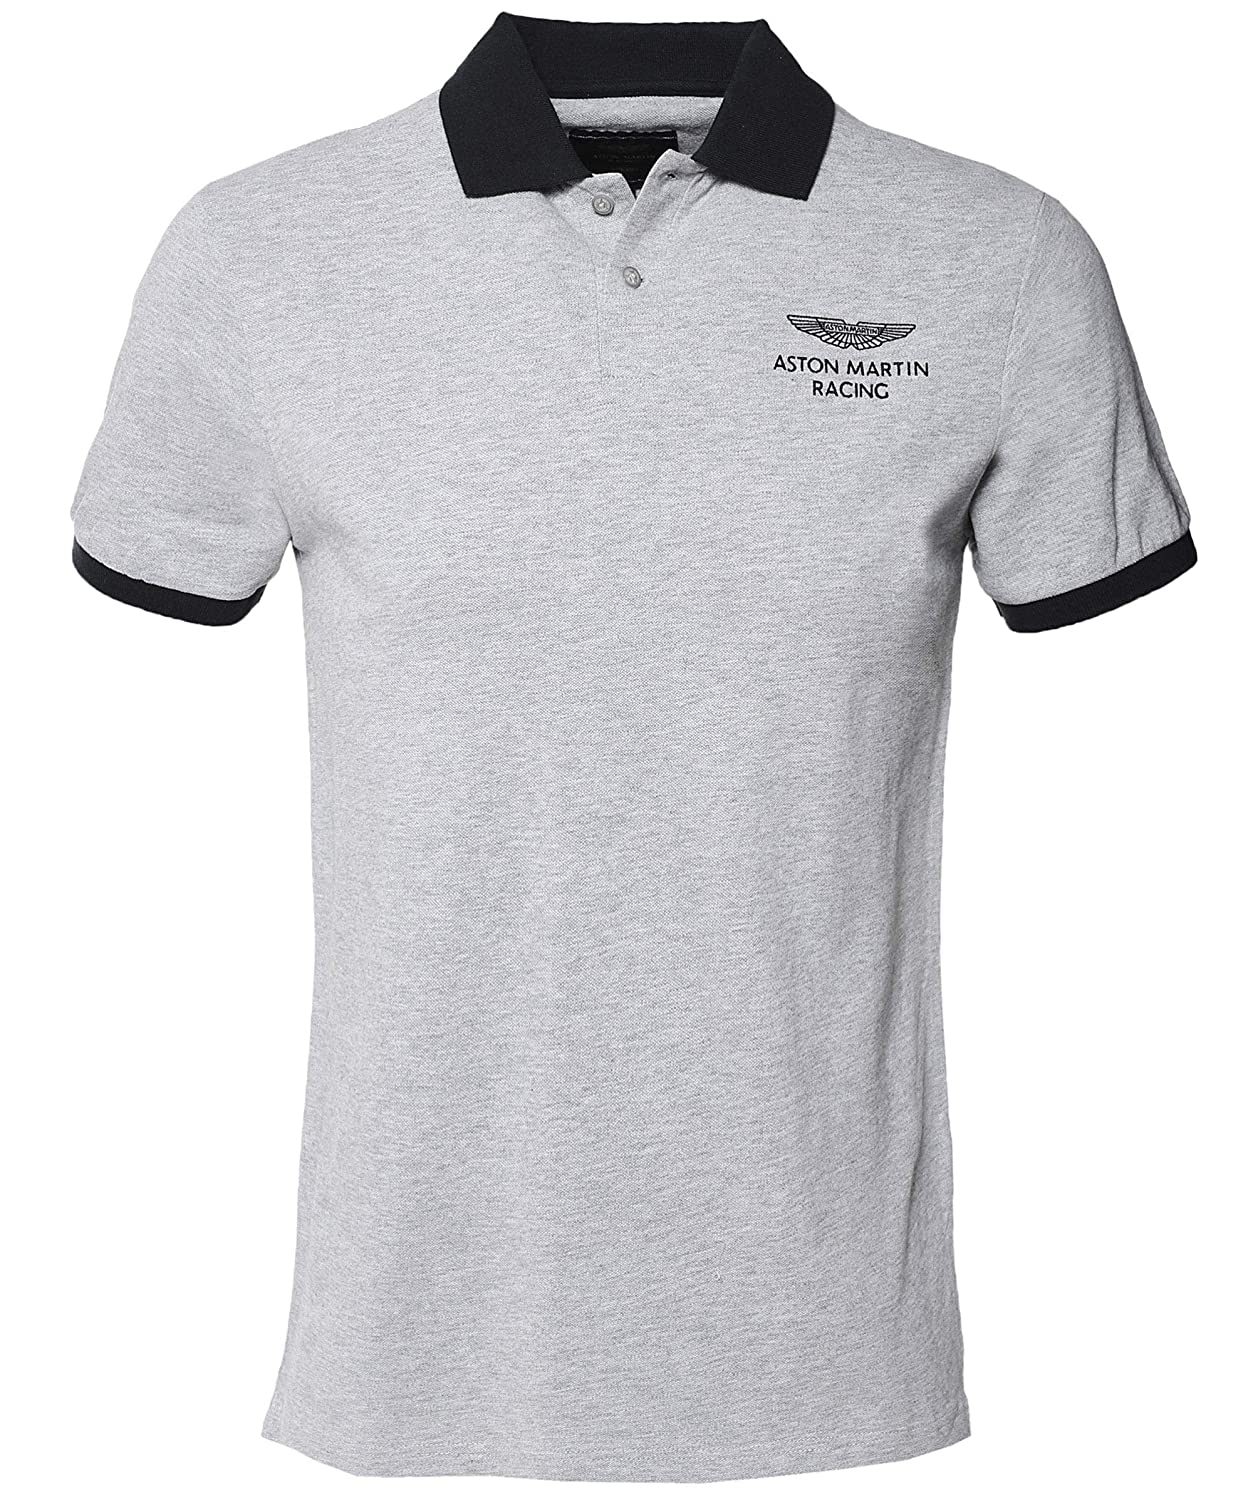 Polo Hackett Aston Martin HKT UCLLR - Color - Gris, Talla - XL ...